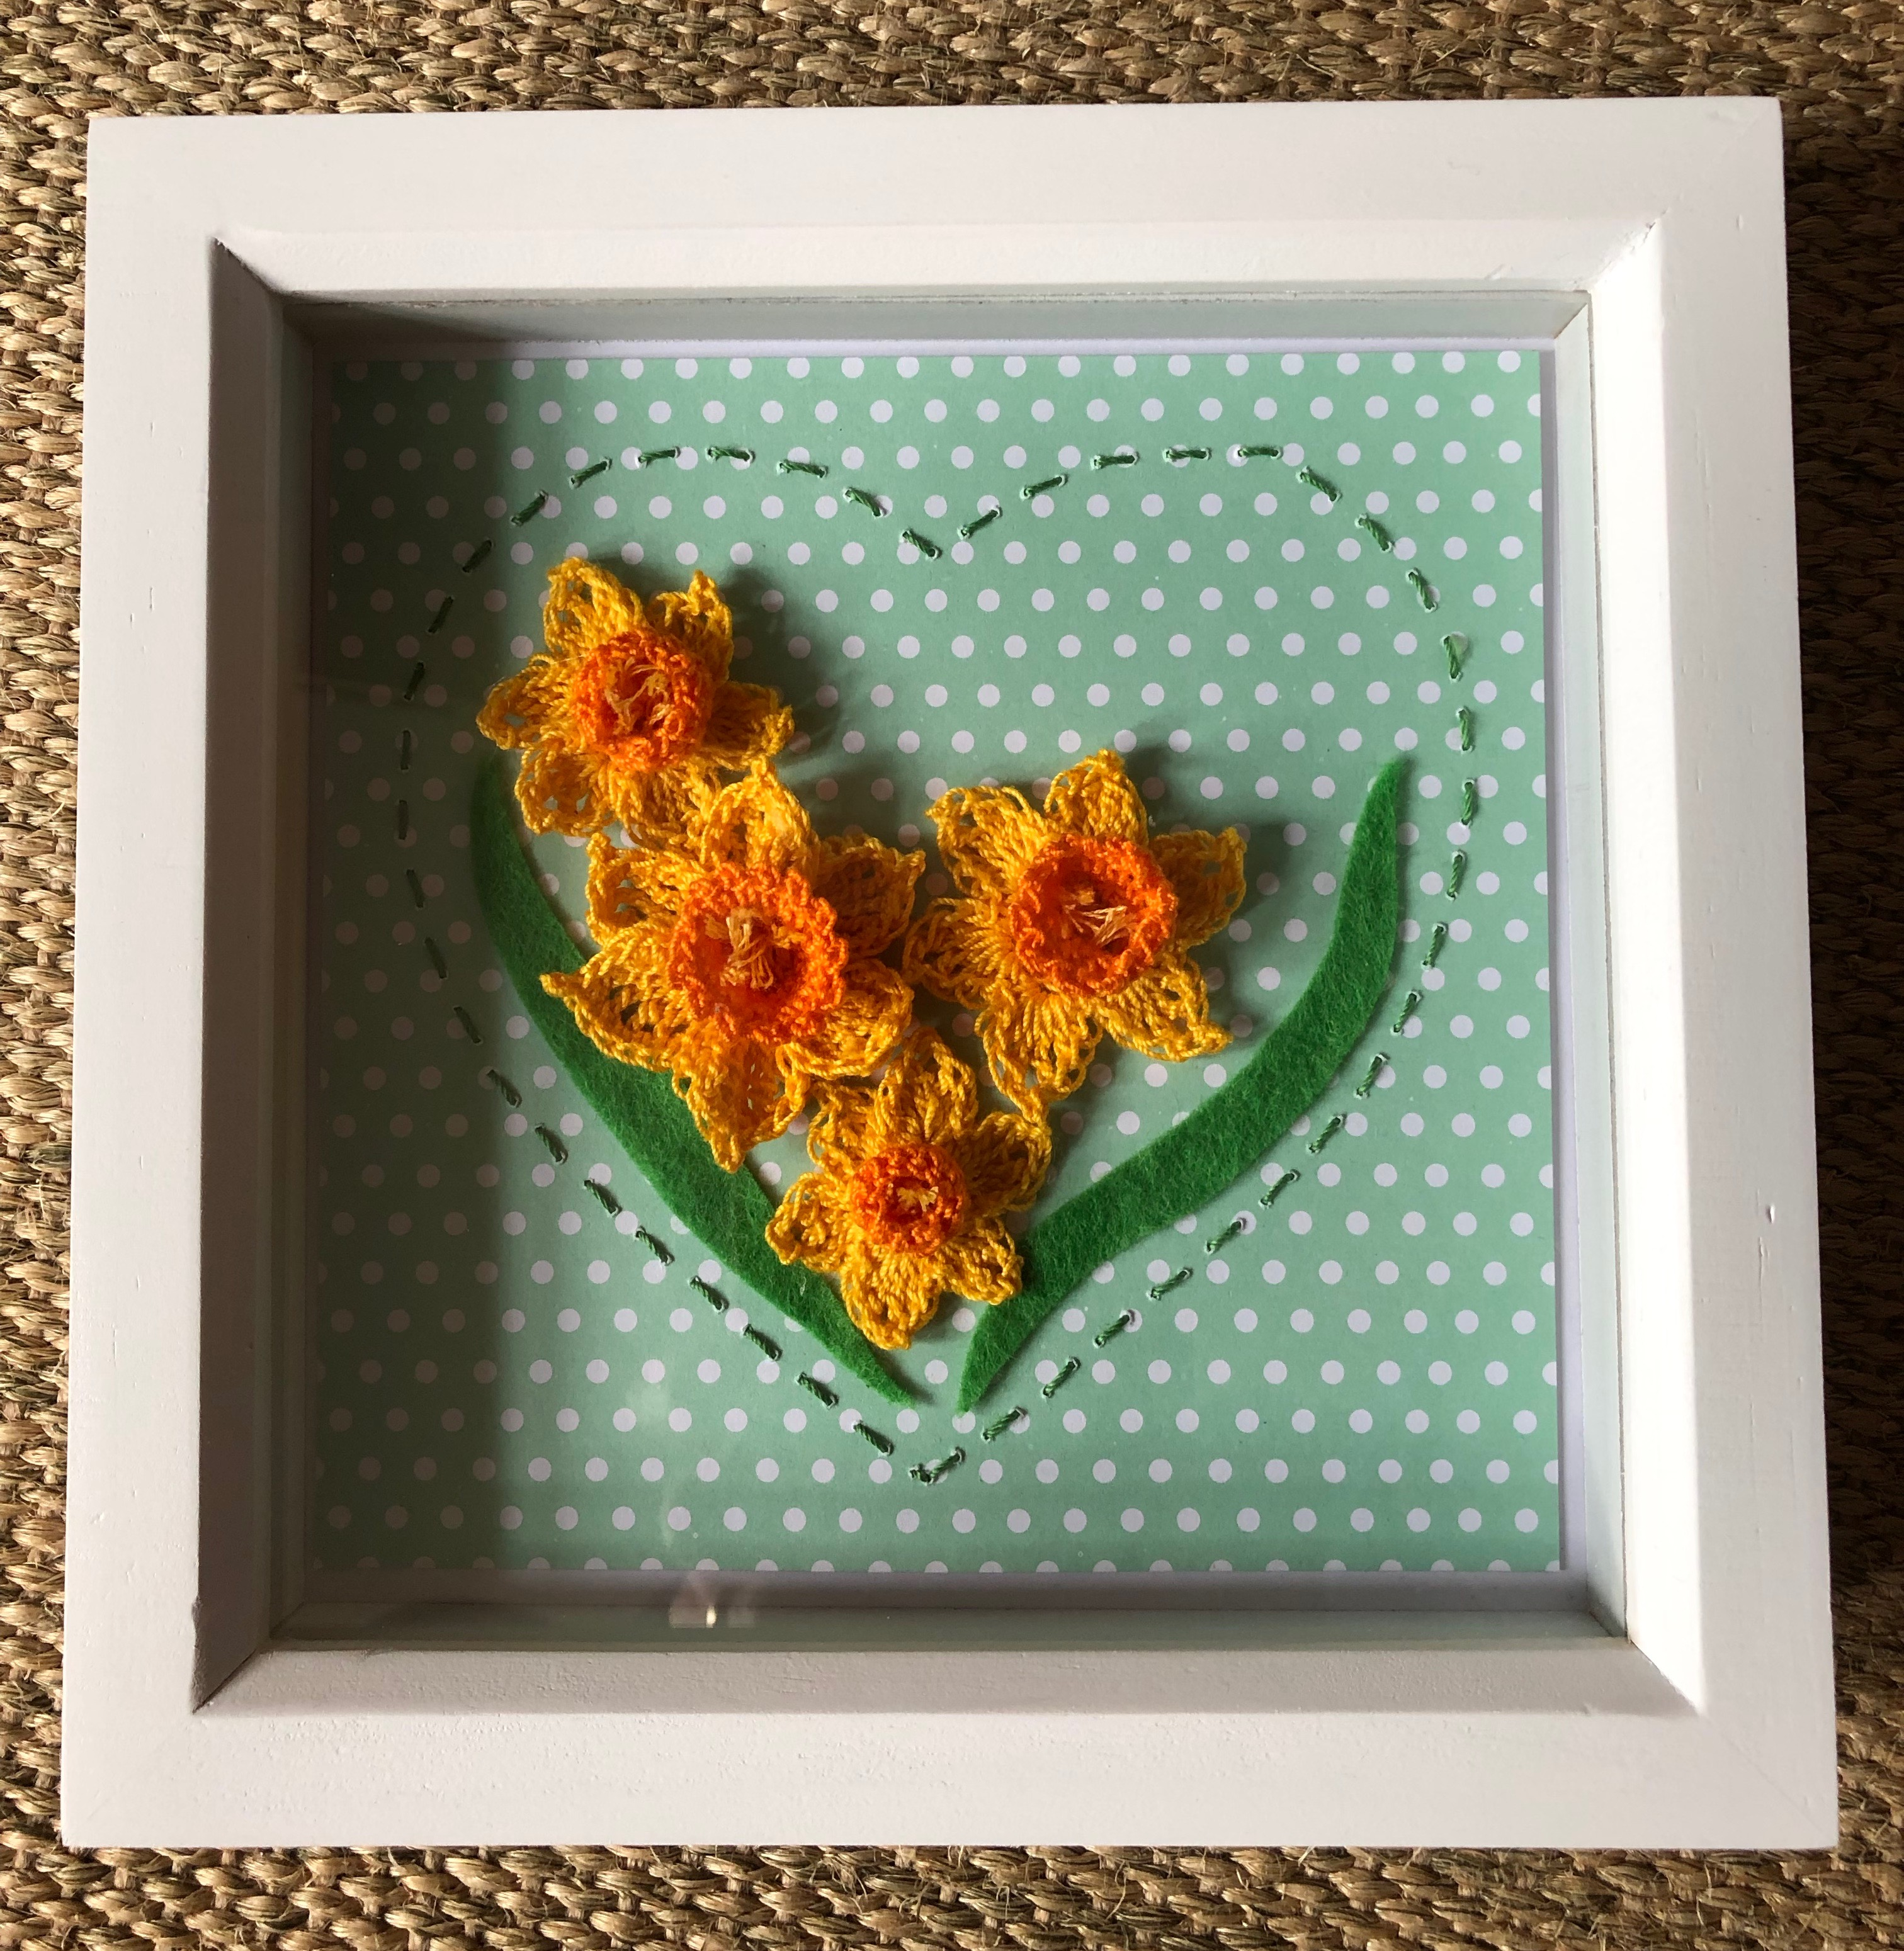 A white wooden framed picture with 4 handmade, crocheted yellow and orange daffodils with green felt leaves surrounded by a hand stitched green heart on a green and white spotty background.